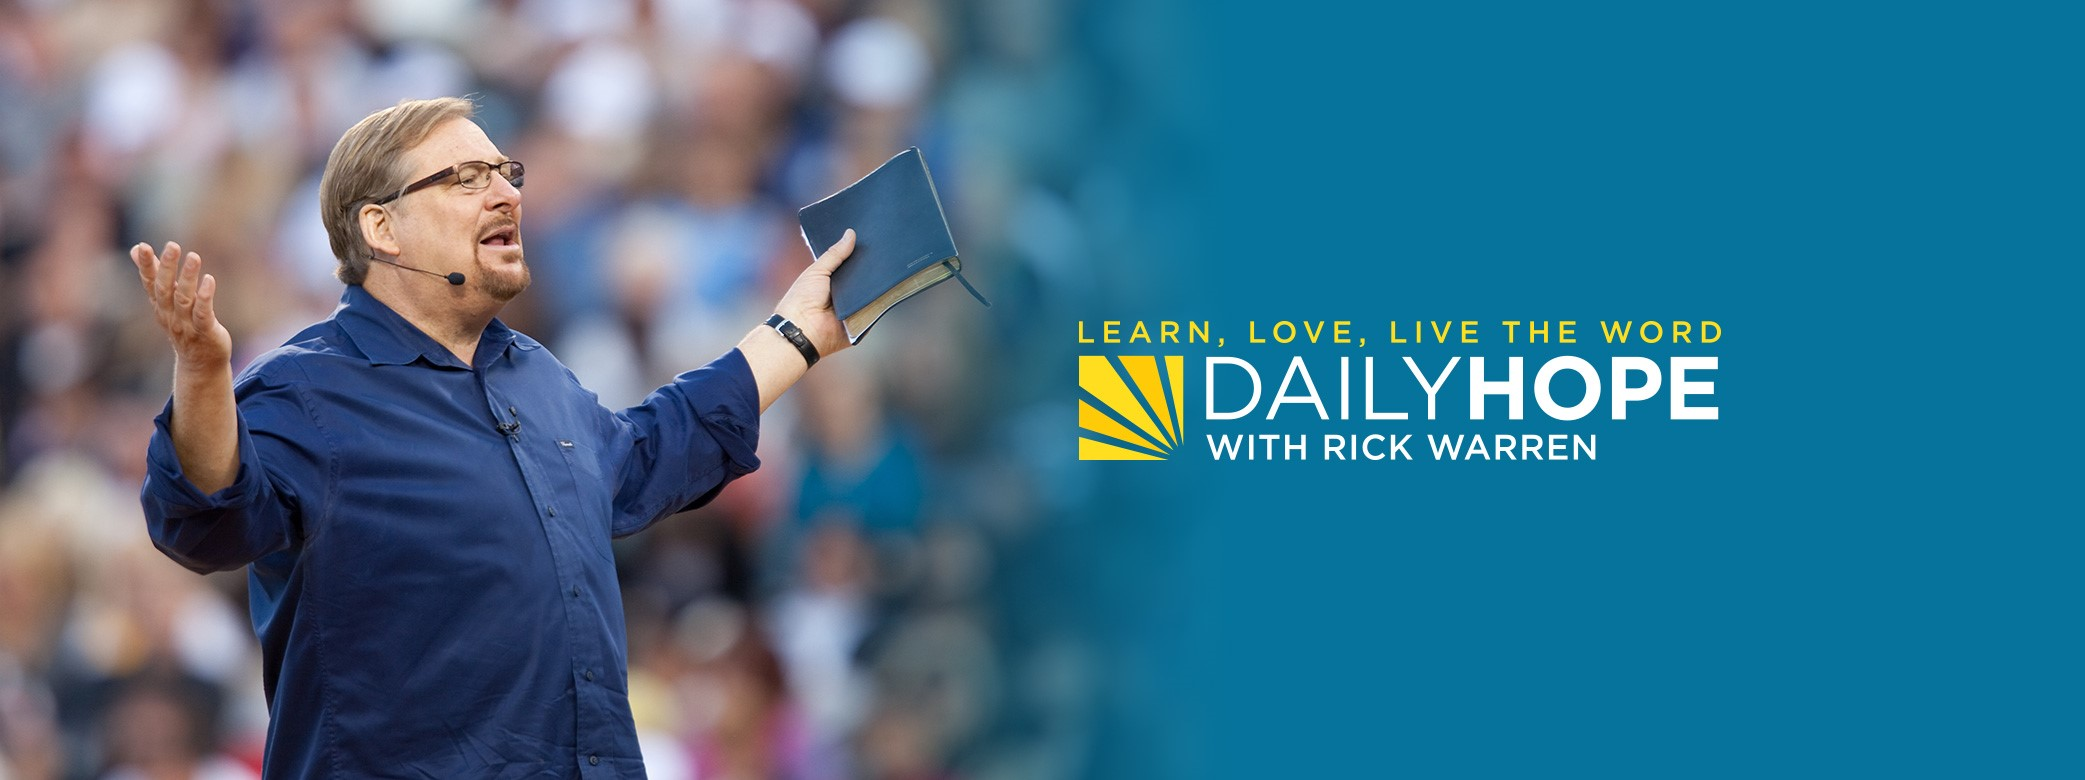 Daily Hope Devotional with Rick Warren 1 July 2020